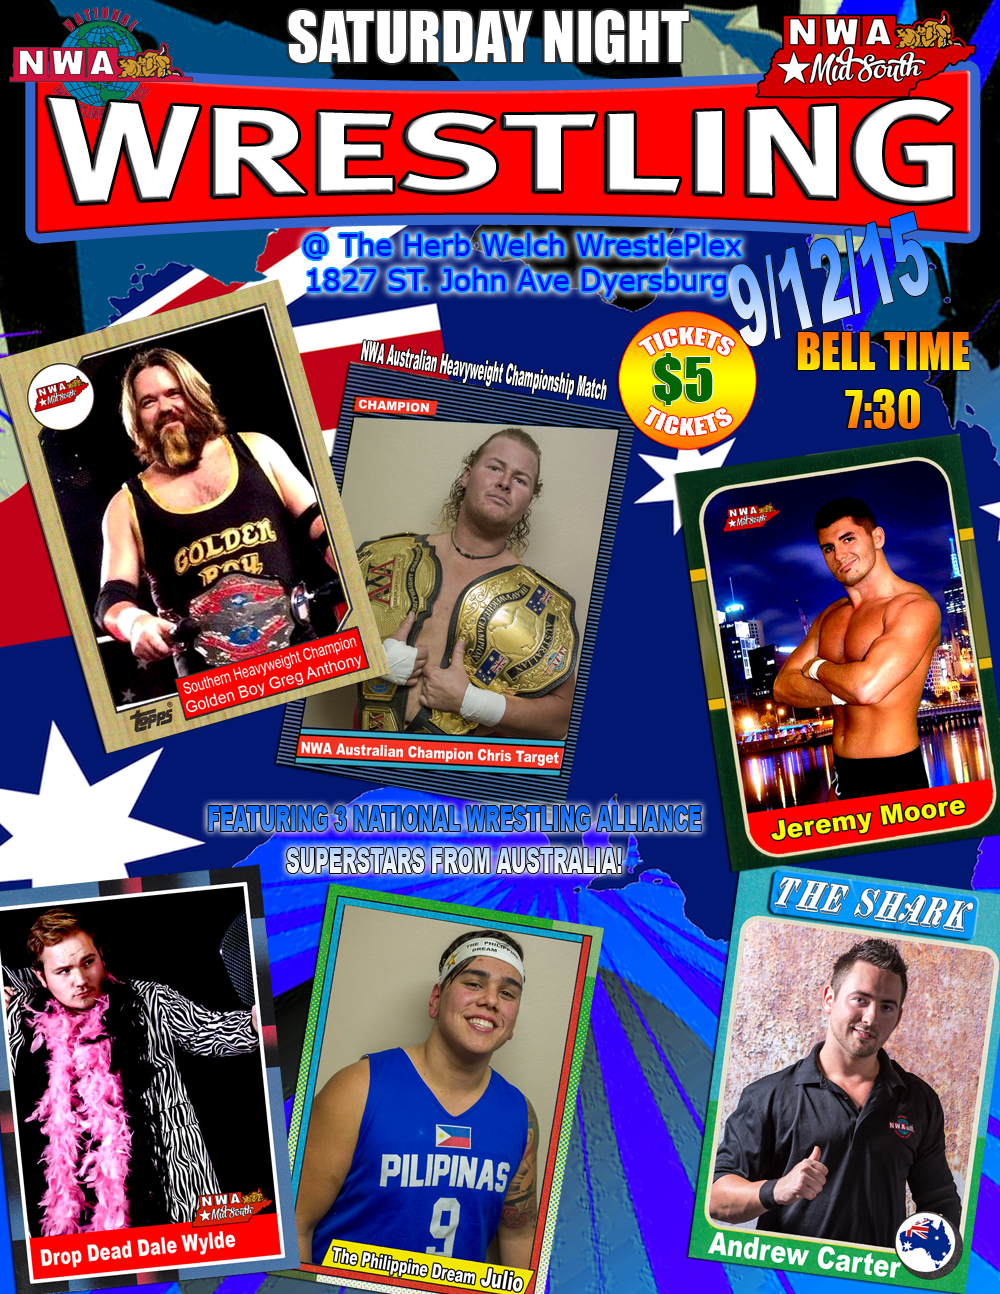 NWA Mid South has very special guests this Saturday!